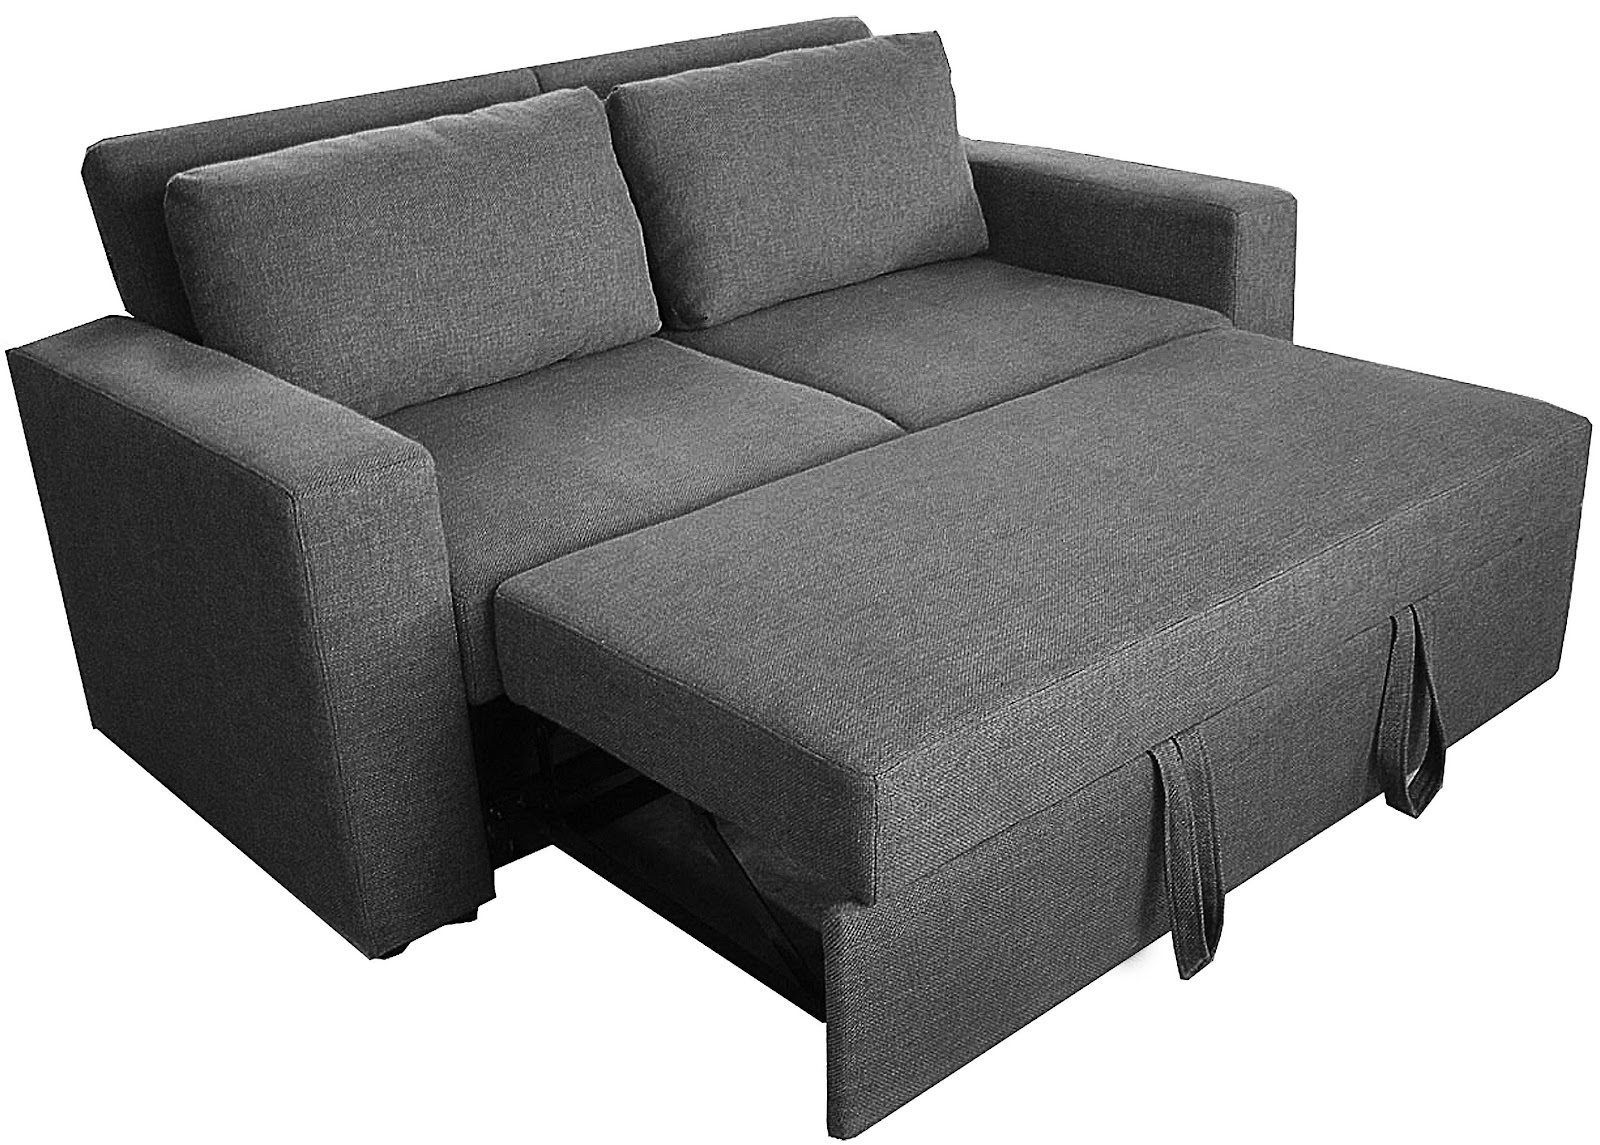 Sectional Sofa With Pull Out Bed Has One Of The Best Kind Of Other Is Pull Out Chair Bed Ikea With Bed Secti Pull Out Sofa Bed Ikea Sofa Bed Small